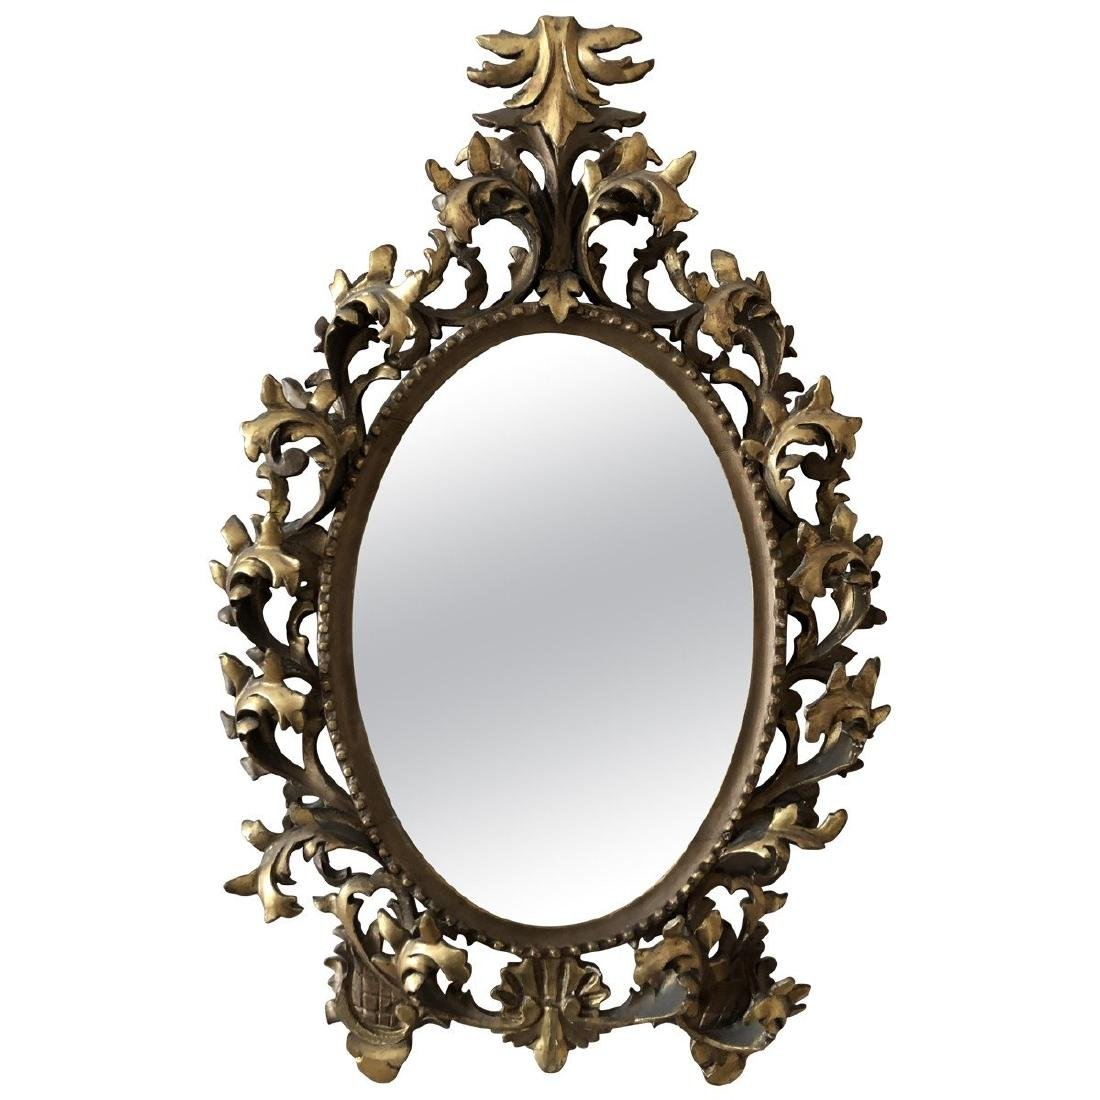 Baroque Style Carved Mirrors 20th Century - 2